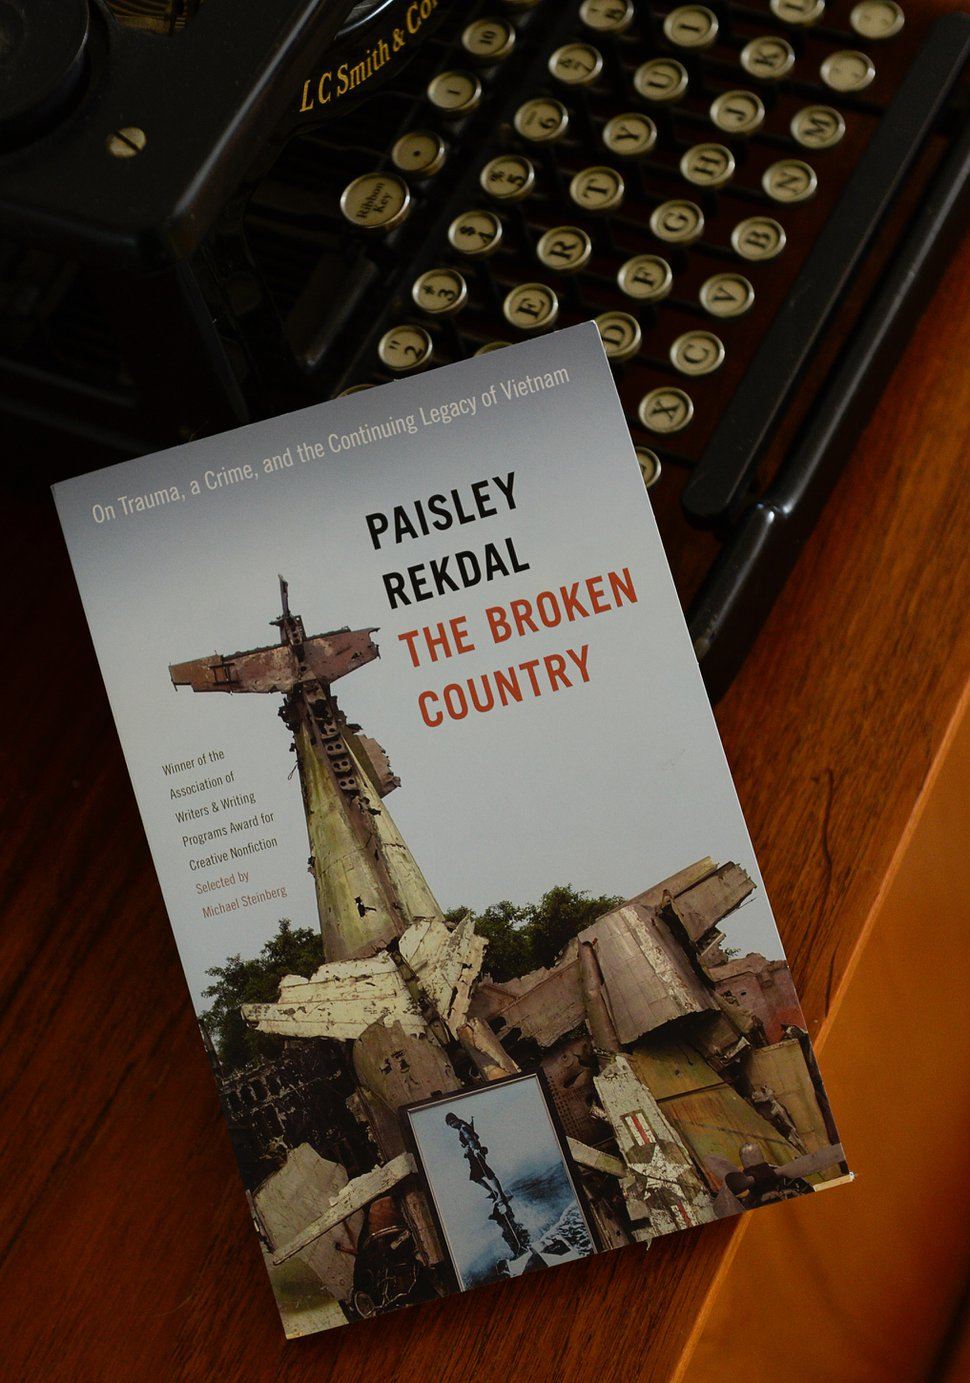 (Francisco Kjolseth | The Salt Lake Tribune) University of Utah poet and professor Paisley Rekdal has written new book about the legacy of trauma of the Vietnam war. The book begins with the 2012 stabbing at Smith's by Kiet Thanh Ly, the homeless man who inexplicably began stabbing white people, including a U. English student.